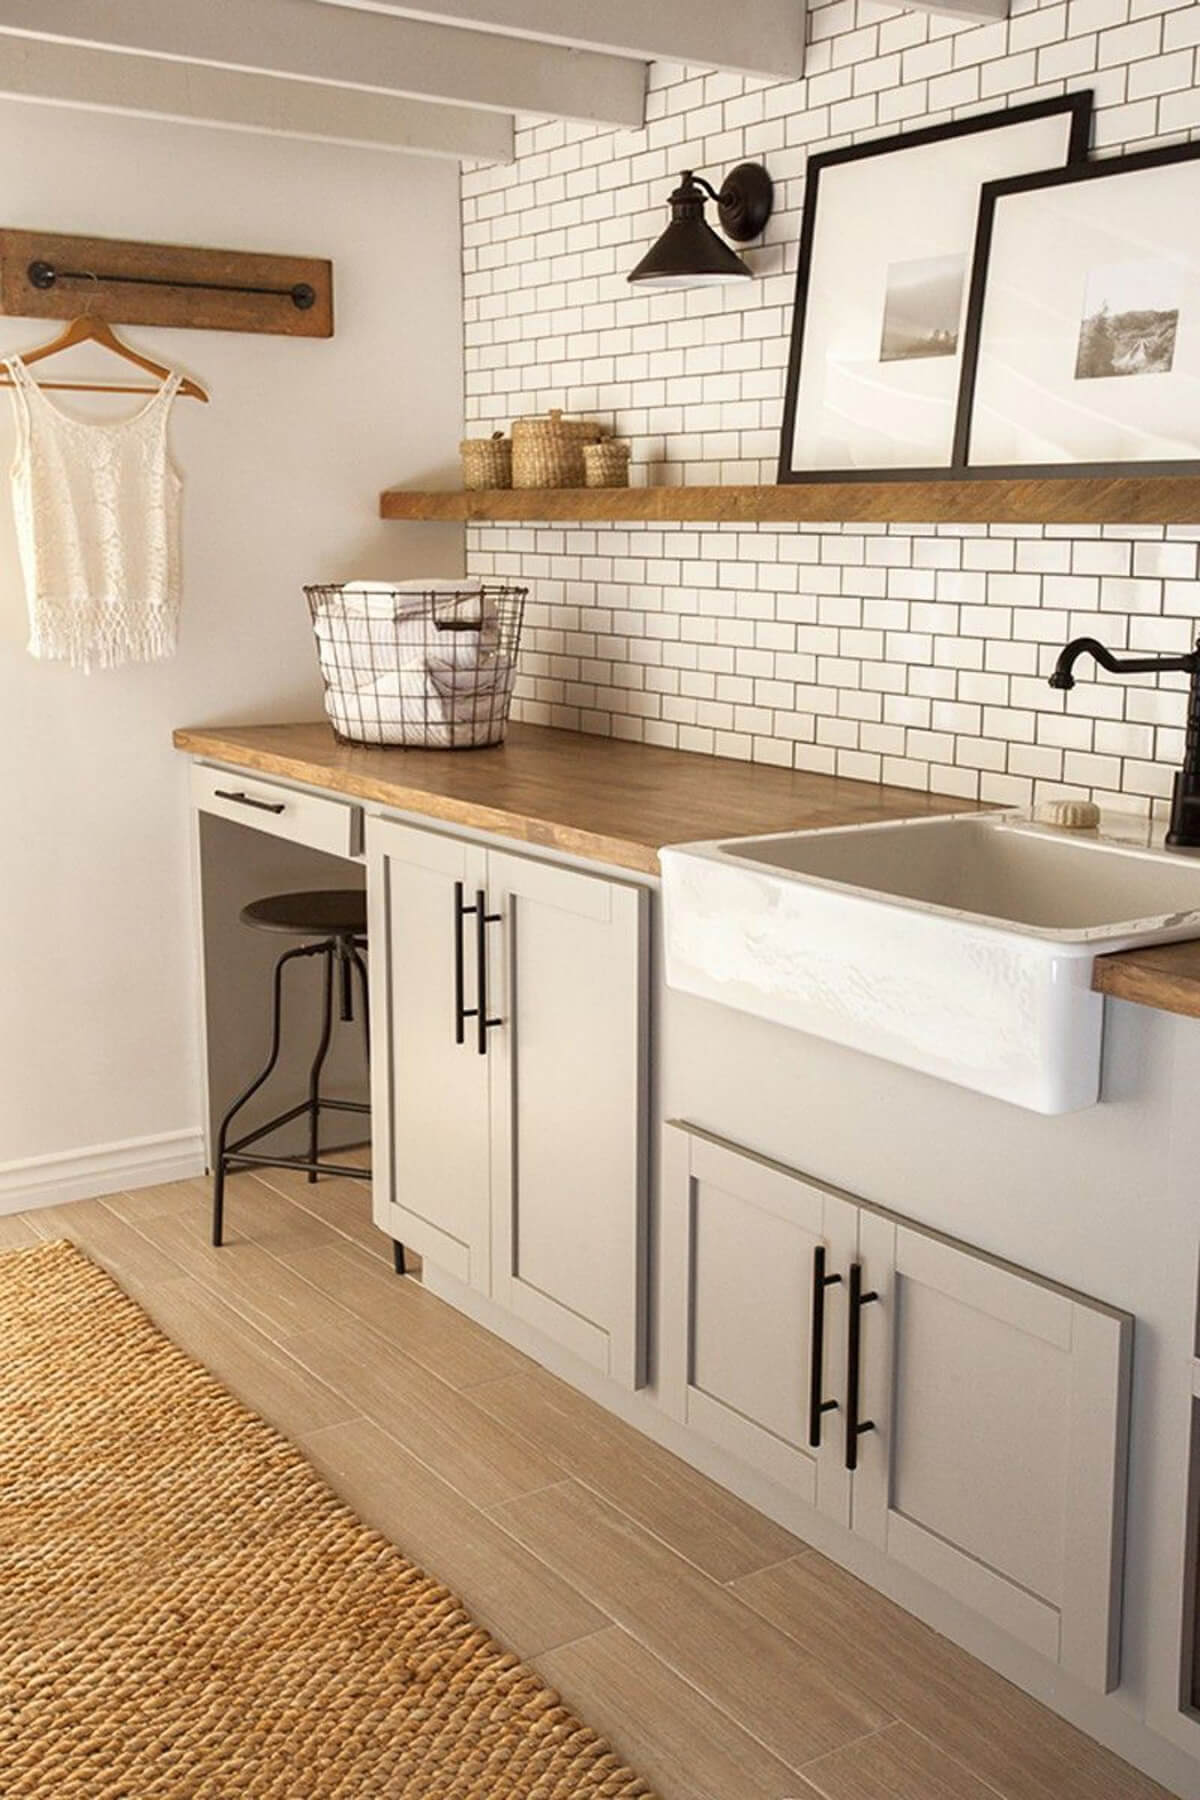 28 Best Small Laundry Room Design Ideas for 2020 on Laundry Room Decor Ideas  id=40770